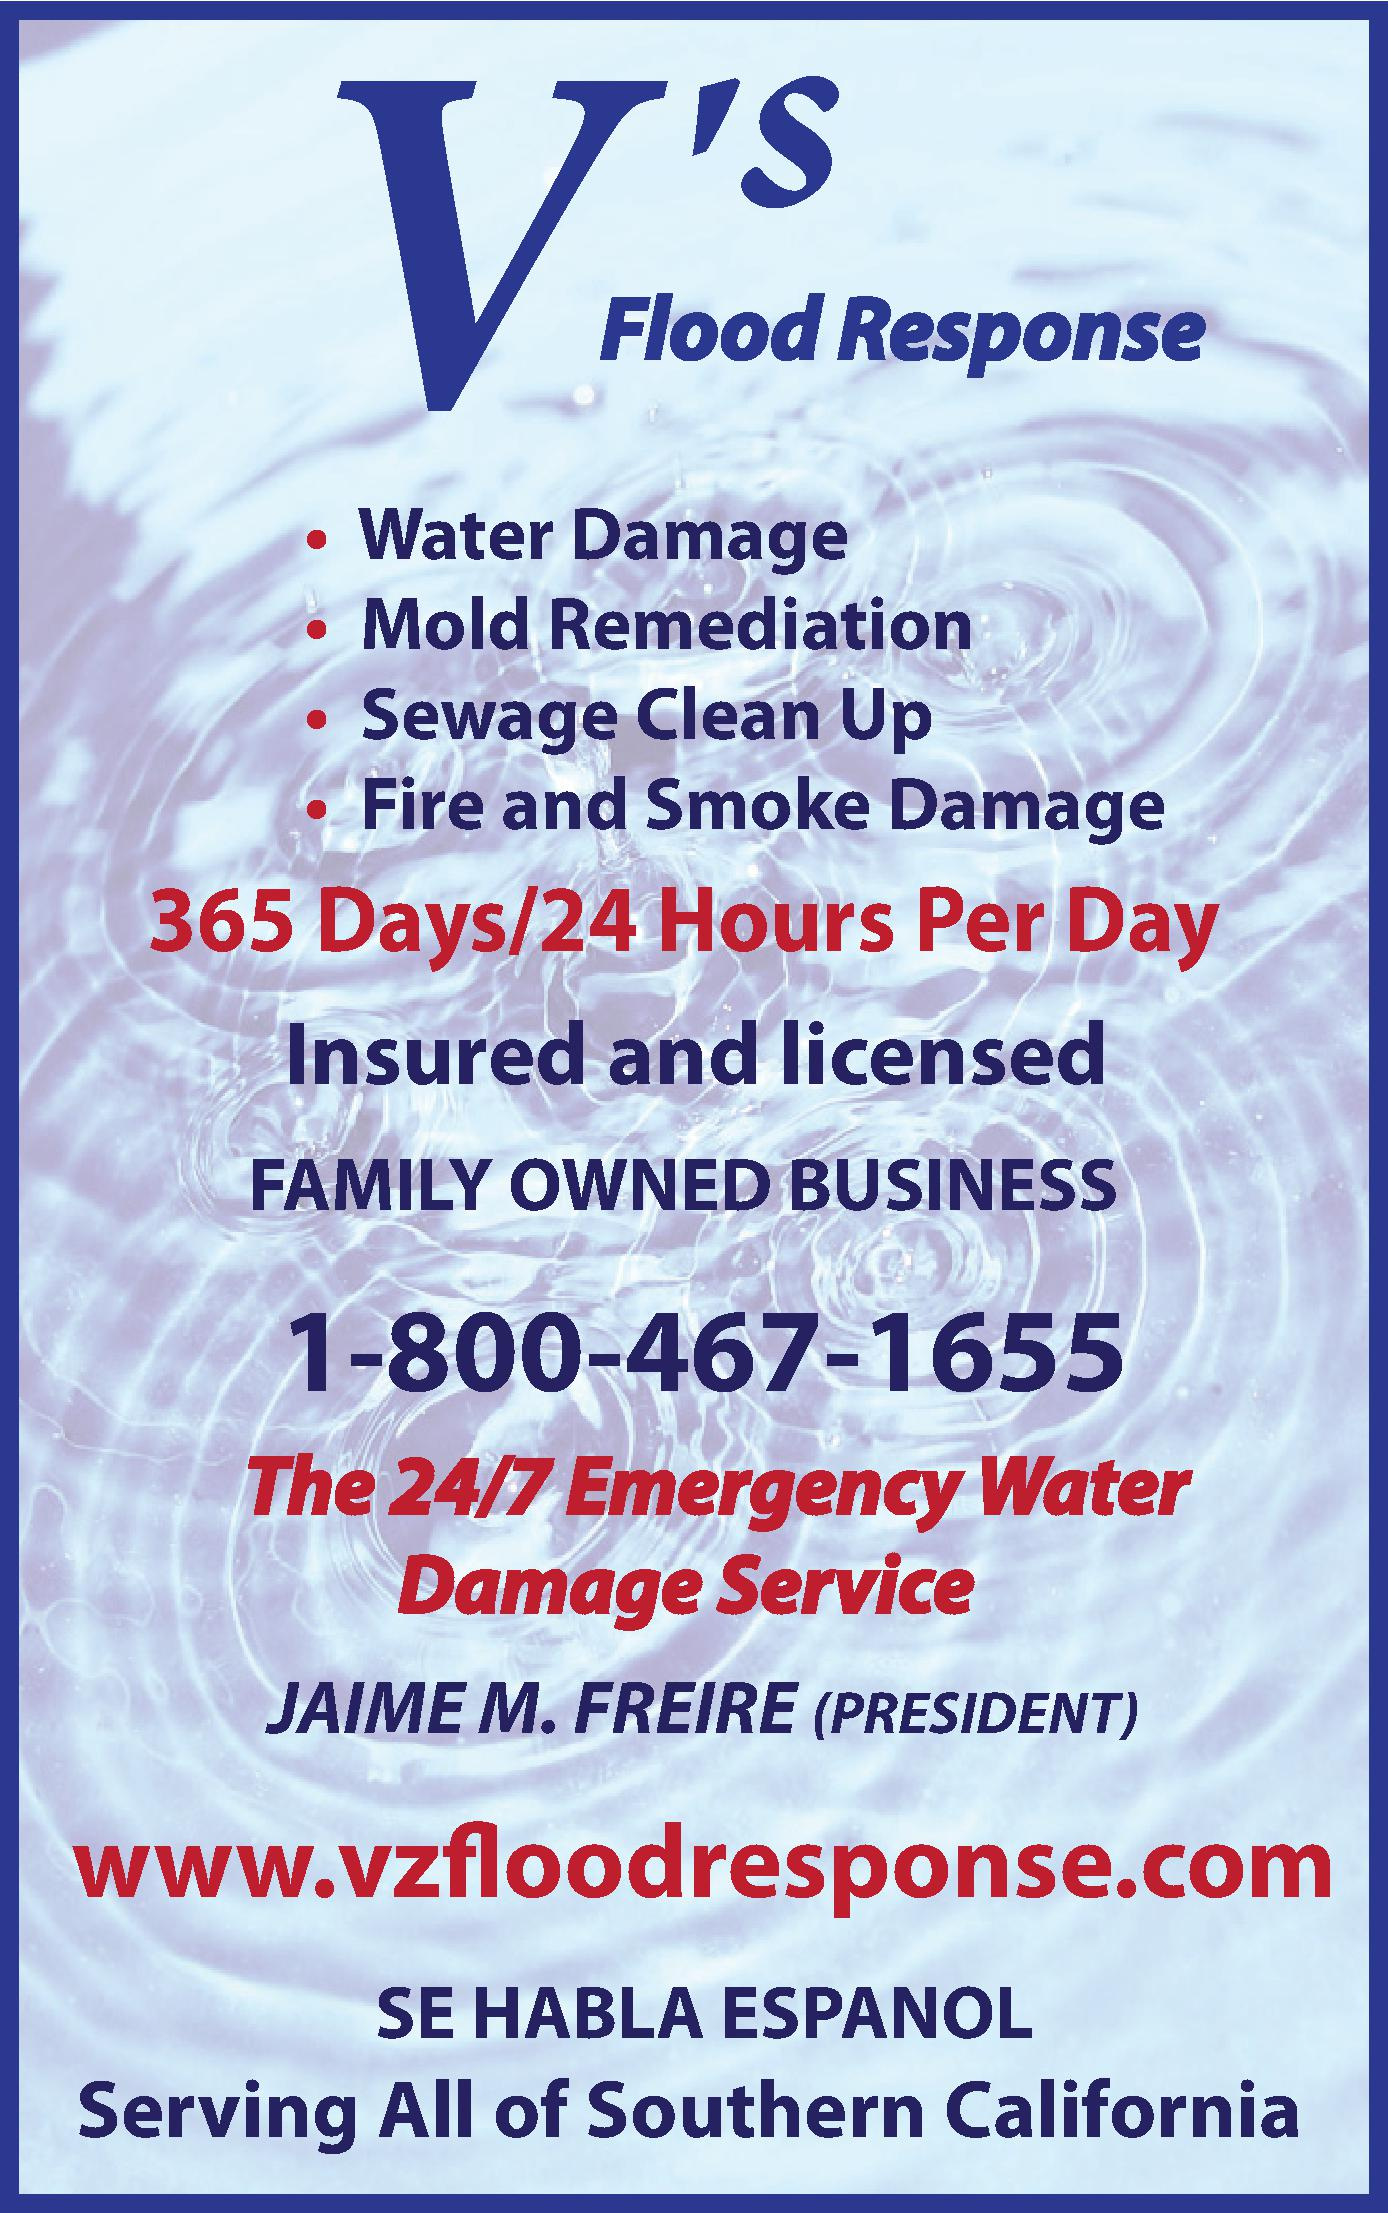 V's 24/7 Emergency Water Damage Service